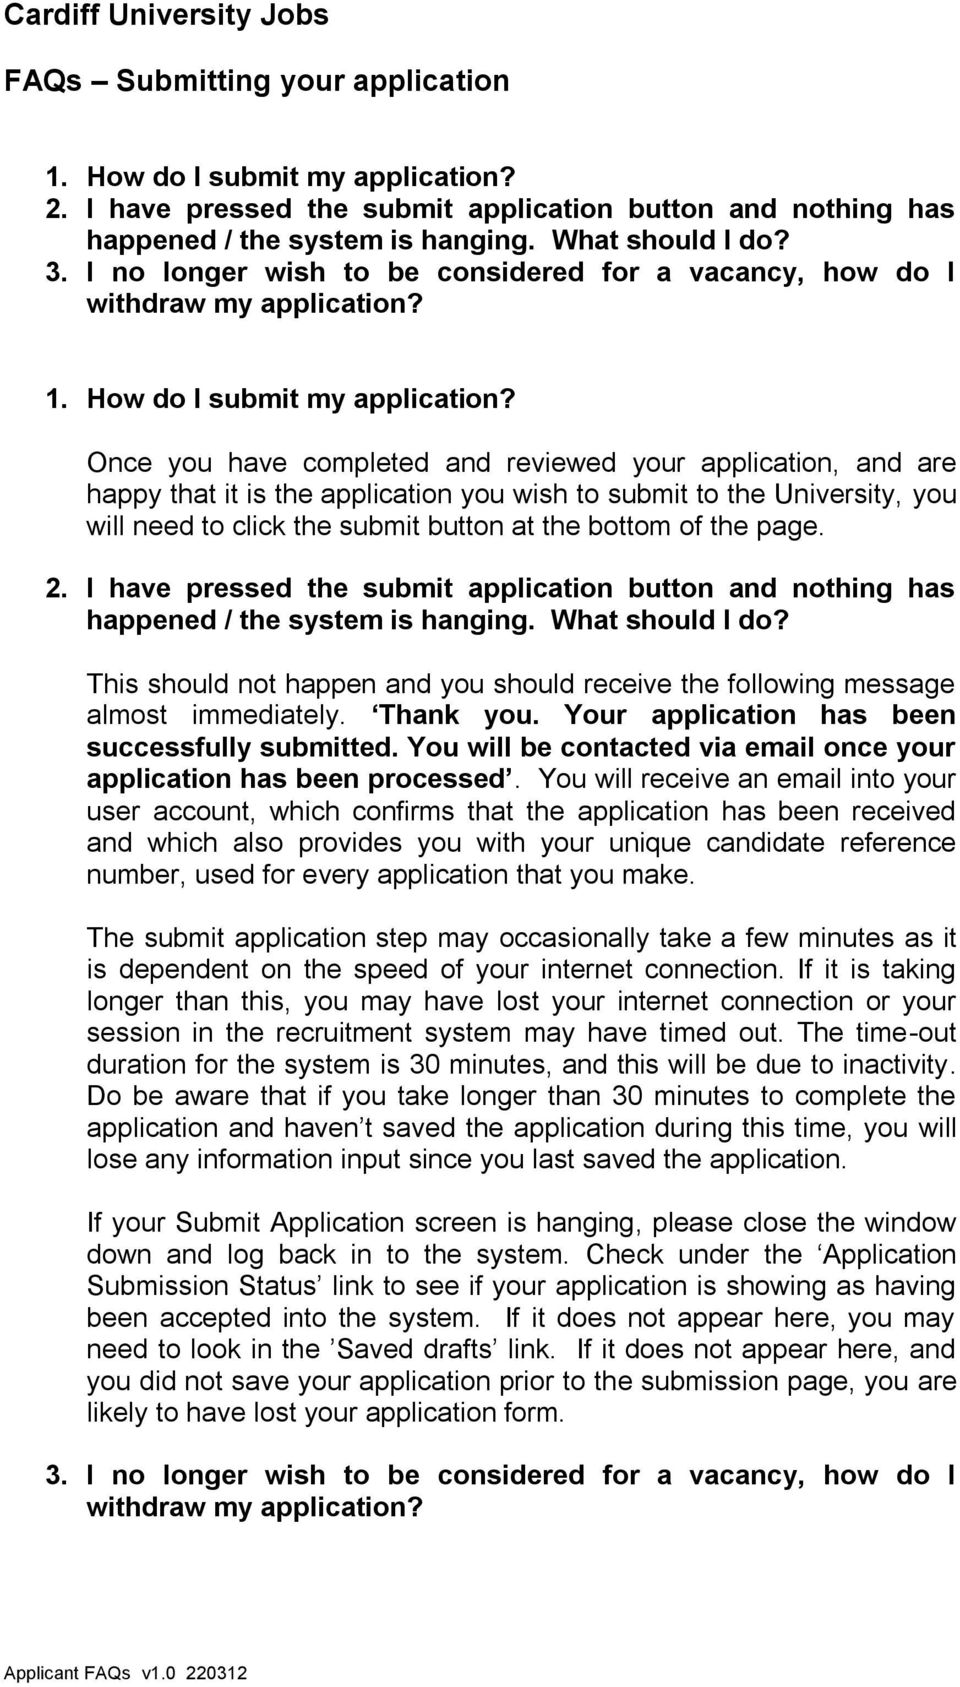 Once you have completed and reviewed your application, and are happy that it is the application you wish to submit to the University, you will need to click the submit button at the bottom of the